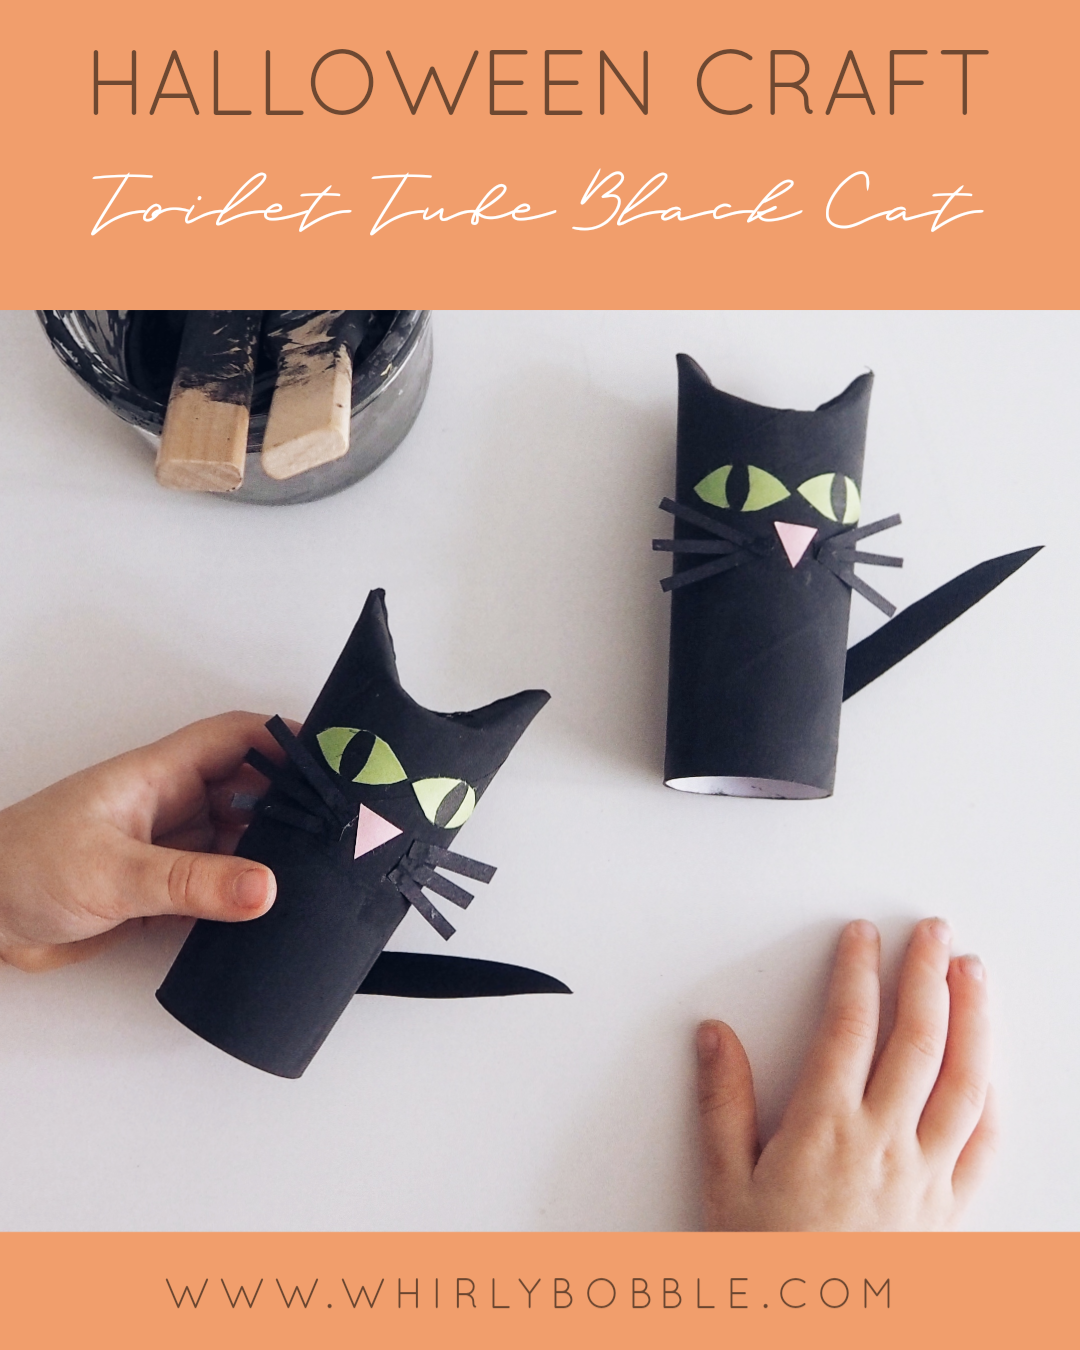 Kids Halloween Craft - Toilet Tube Black Cat